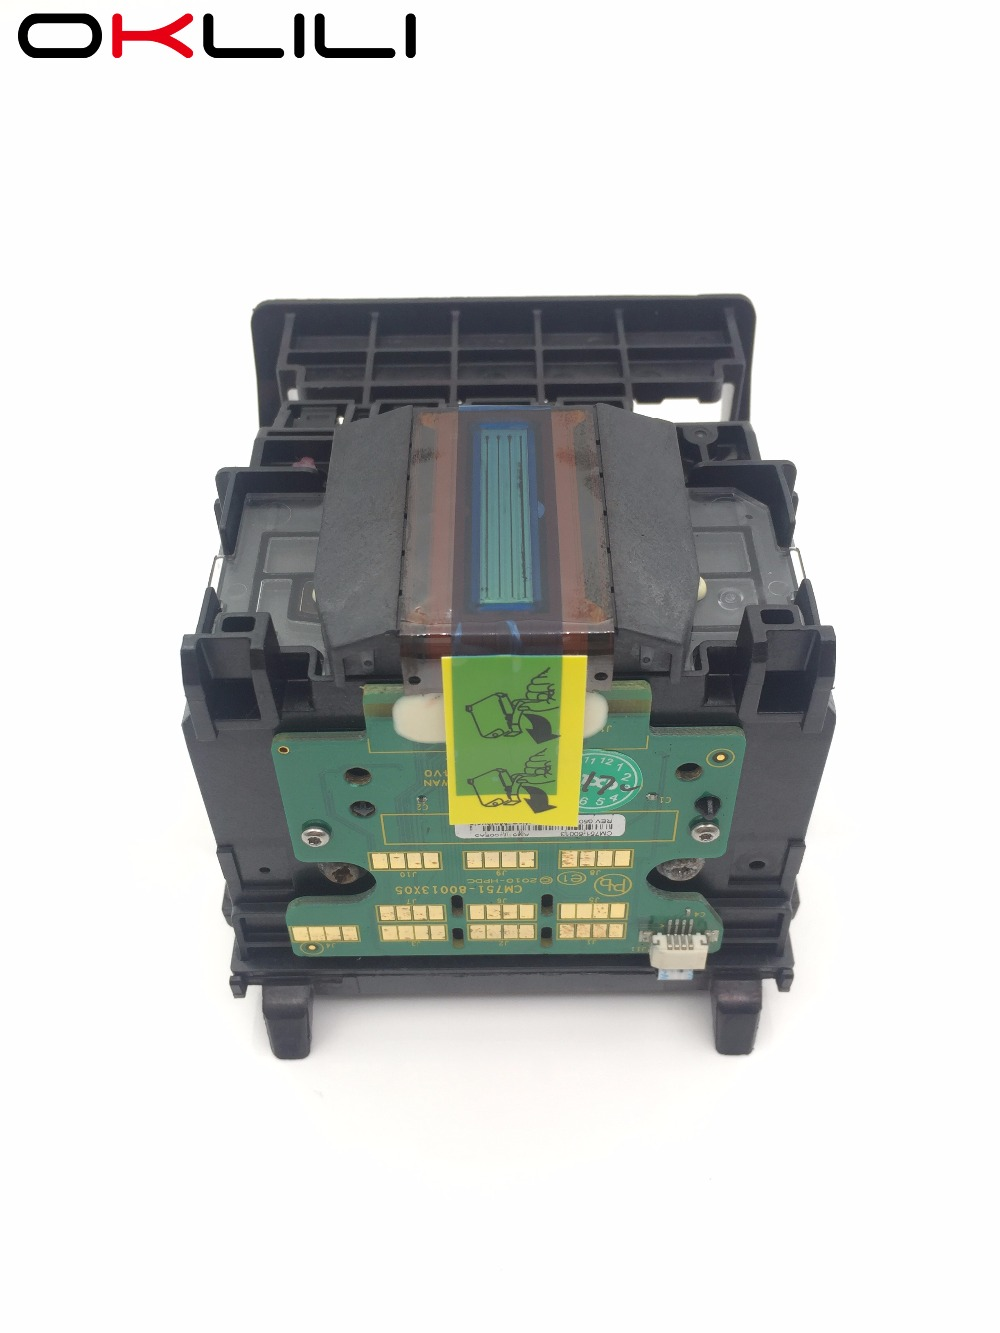 CM751-80013A 950 951 950XL 951XL Printhead Print head for HP Pro 8100 8600 Plus 8610 8620 8625 8630 8700 Pro 251DW 251 276 276DW free software 12 15 all in one touch screen android desktop pos terminal restaurant pos machine cheap pos sytem